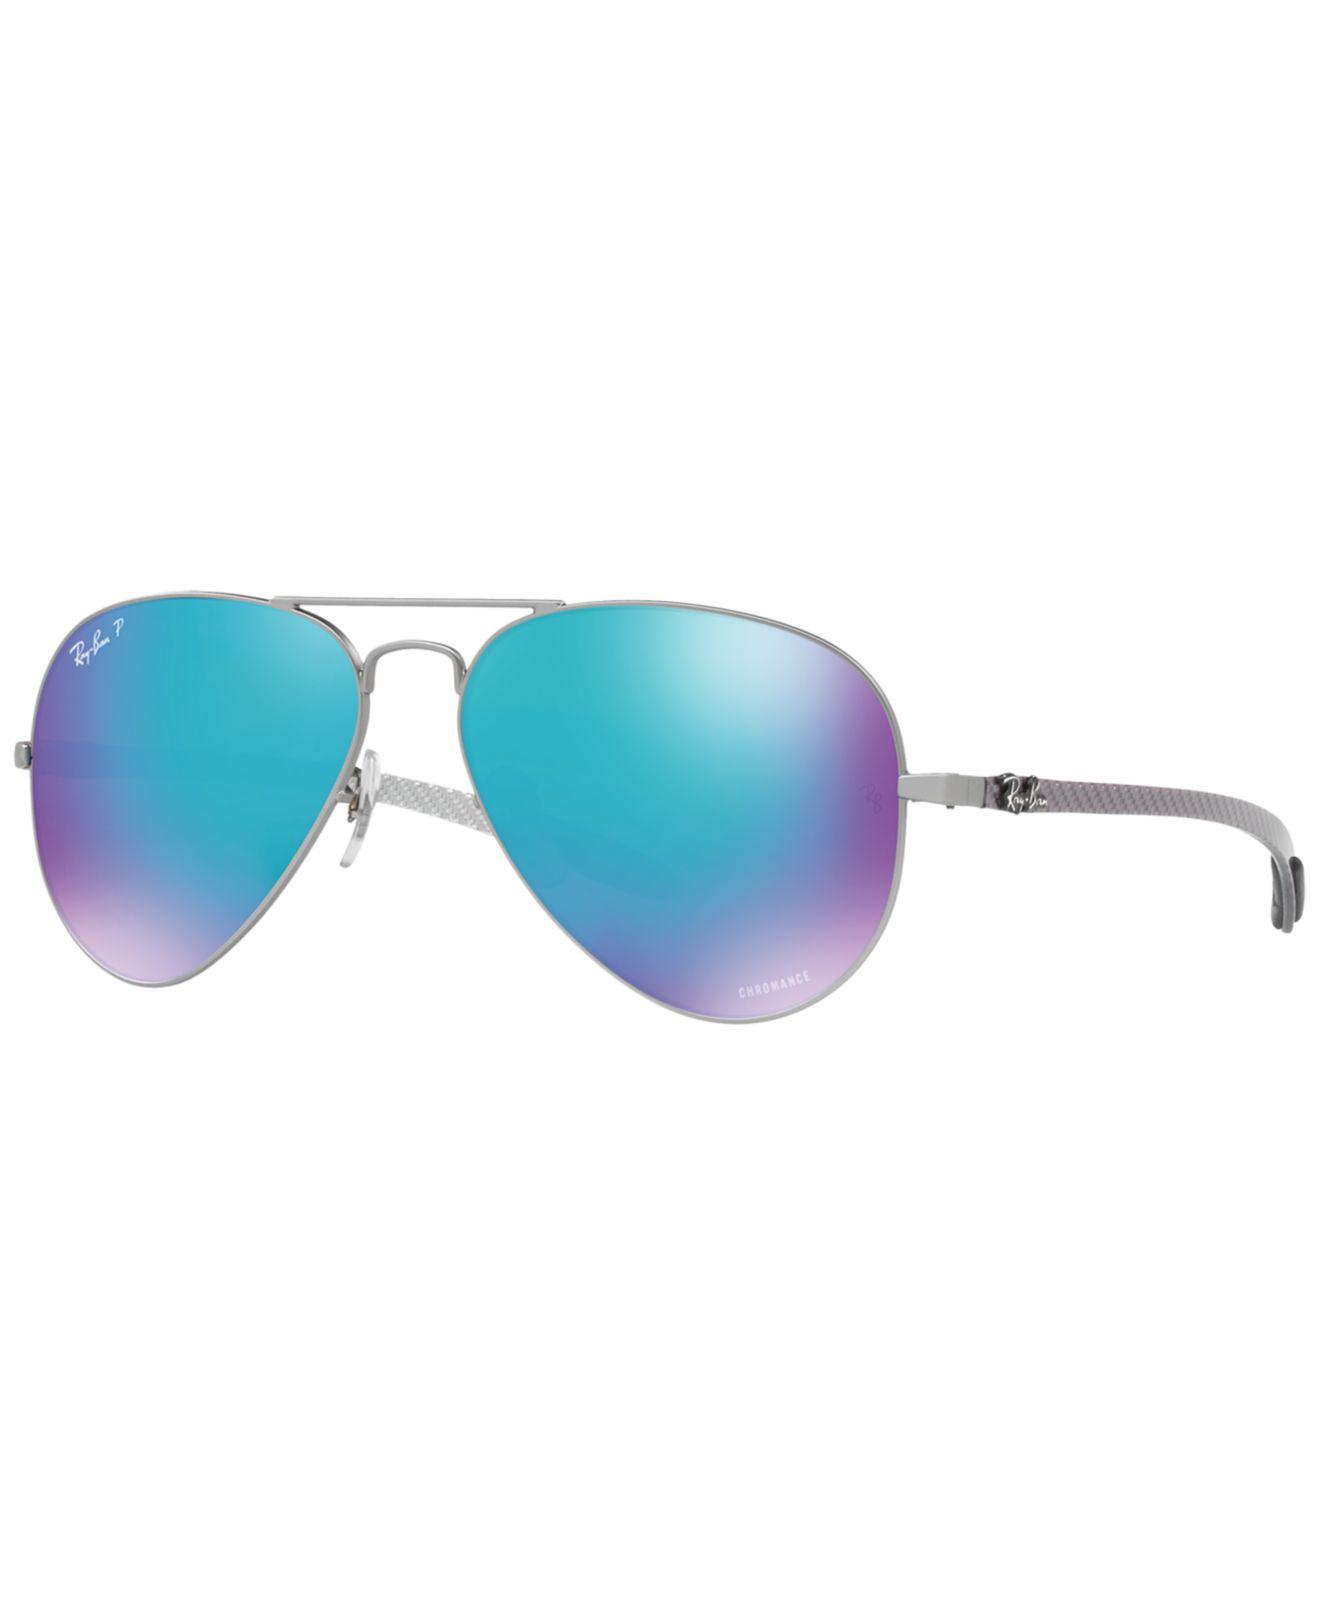 70c1ddcfcb Lyst - Ray-Ban Polarized Sunglasses